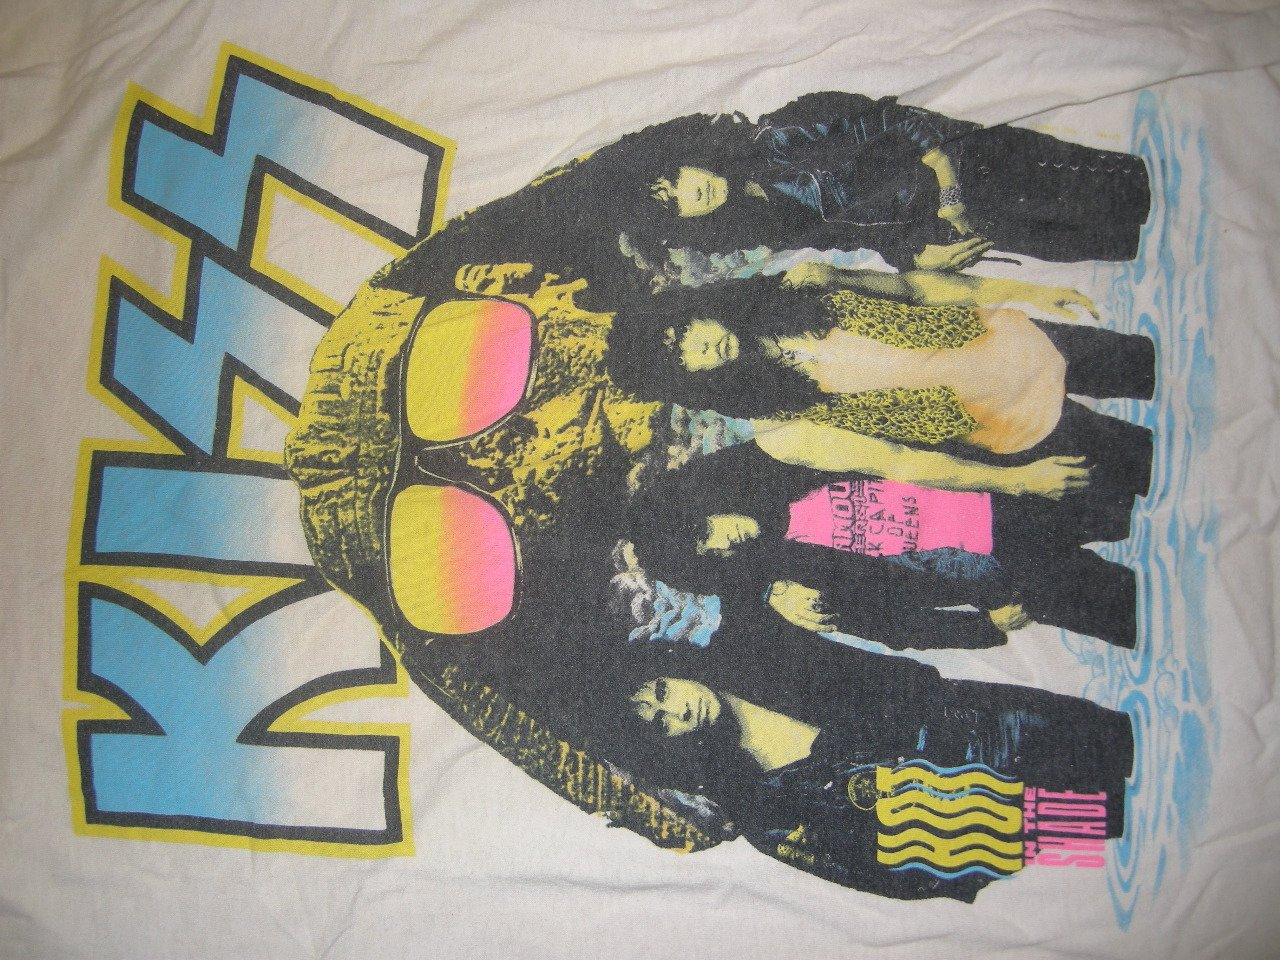 KISS 1990 TOUR SHIRT Hot In The Shade white M VINTAGE SALE